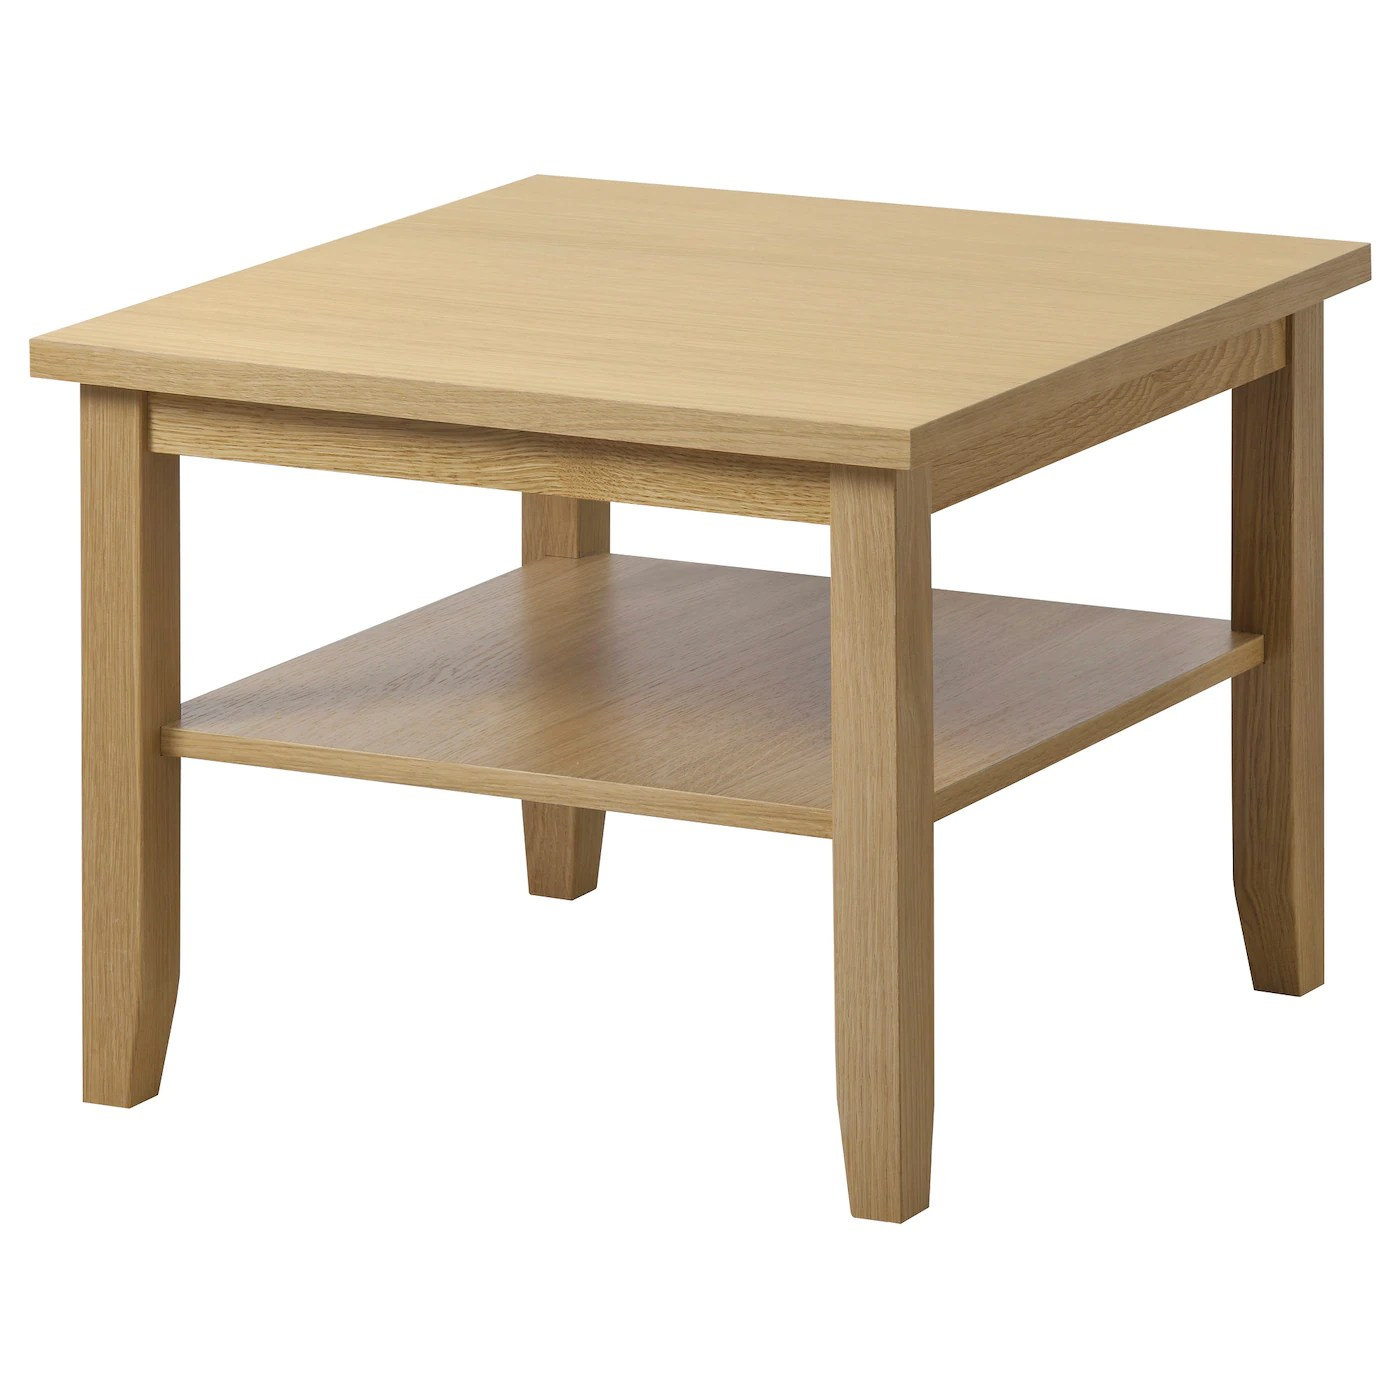 Coffee Tables Images Skoghall Coffee Table Oak 55 X 55 Cm Ikea